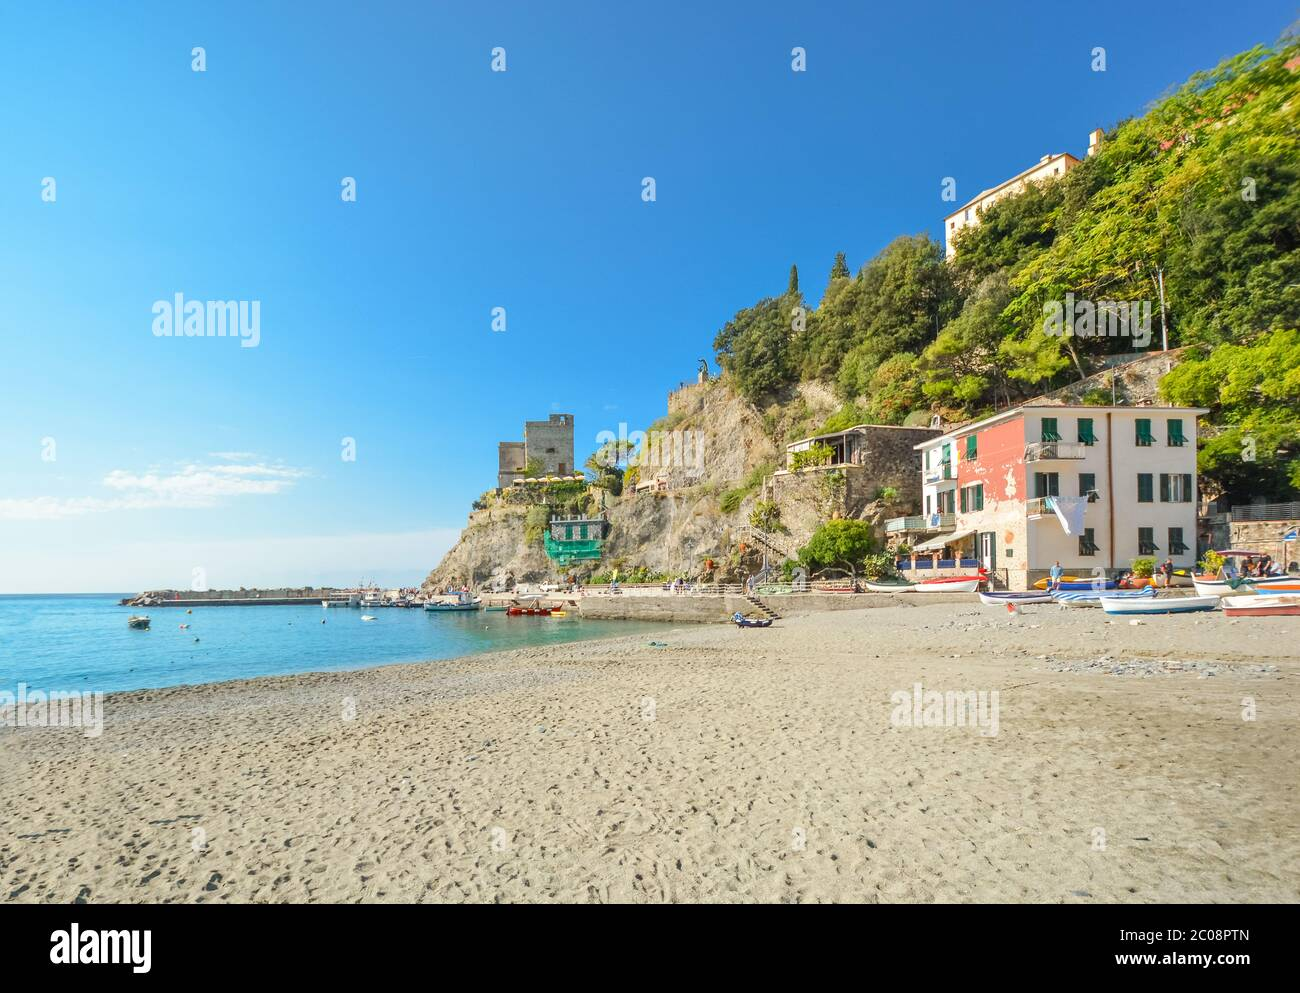 The ruins of the Aurora Tower Castle at Monterosso al Mare rise above the sandy beach and coast in Cinque Terre Italy on the Ligurian Coast Stock Photo